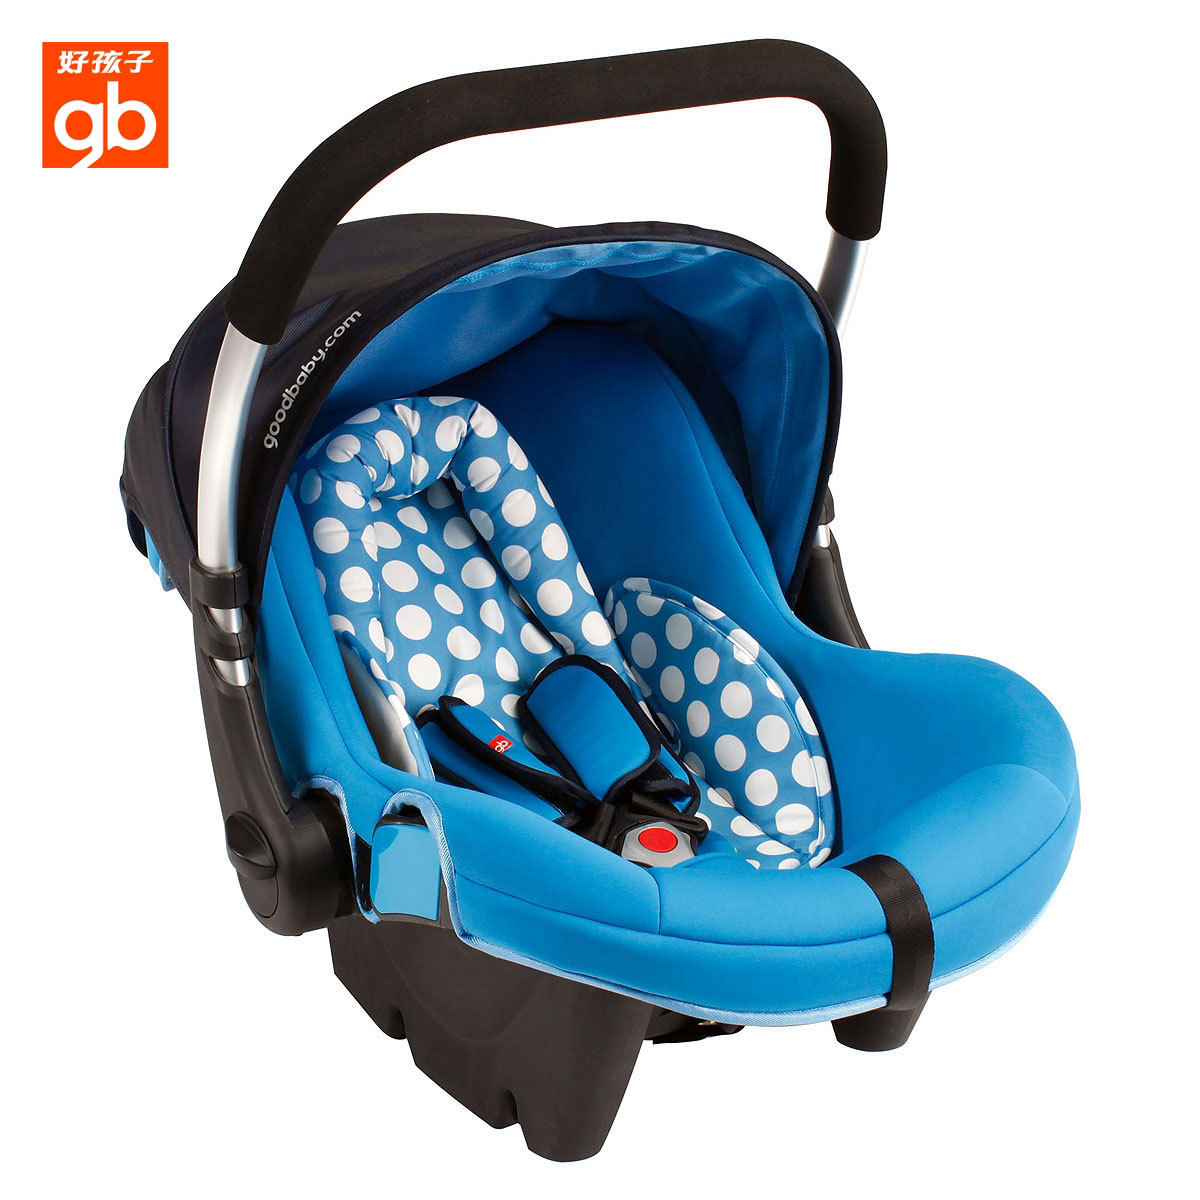 Baby Trend Car Seat Cover